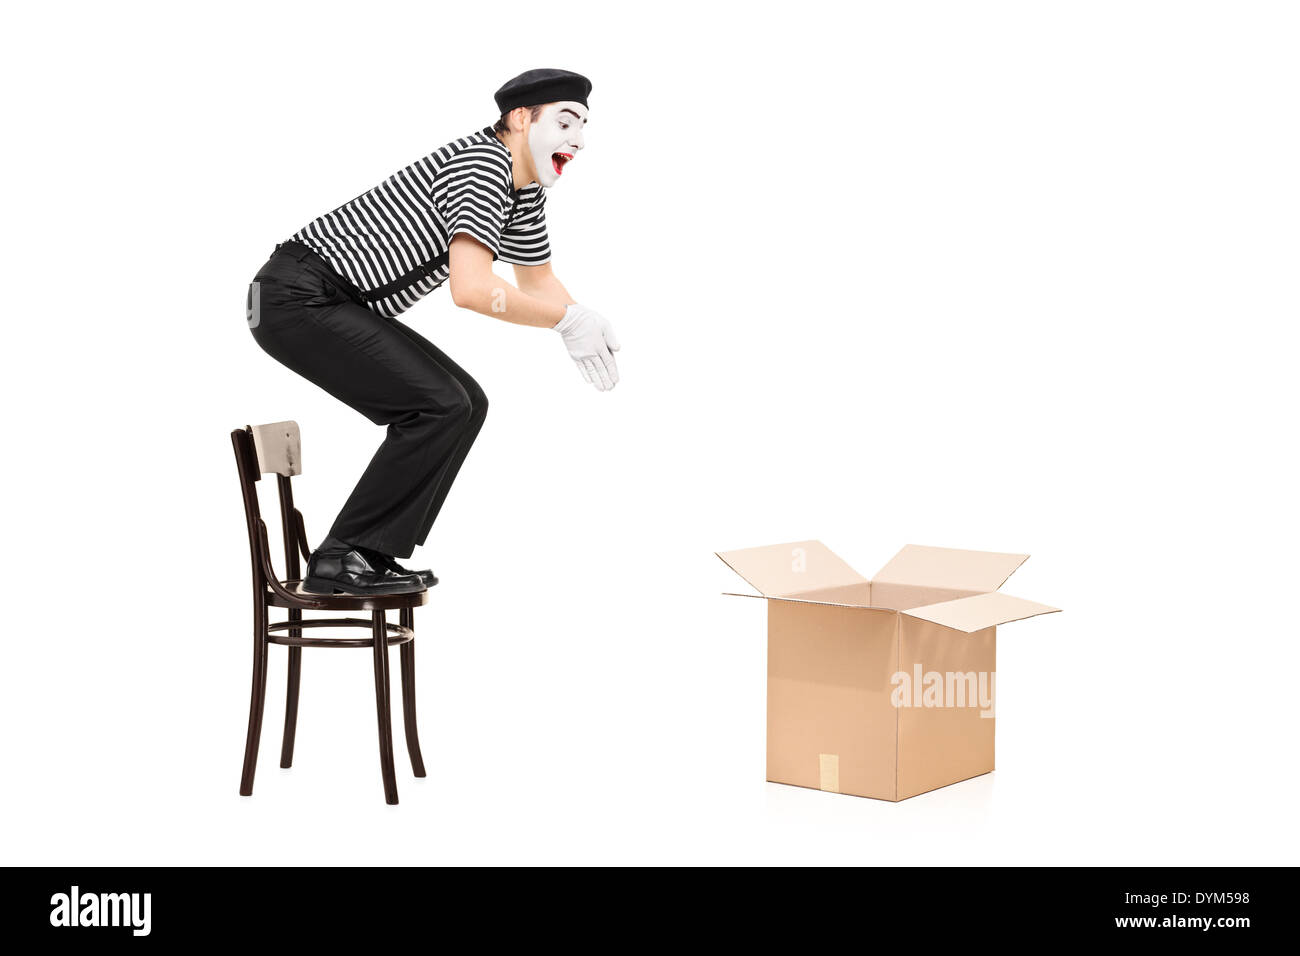 Mime artist jumping in an empty box - Stock Image